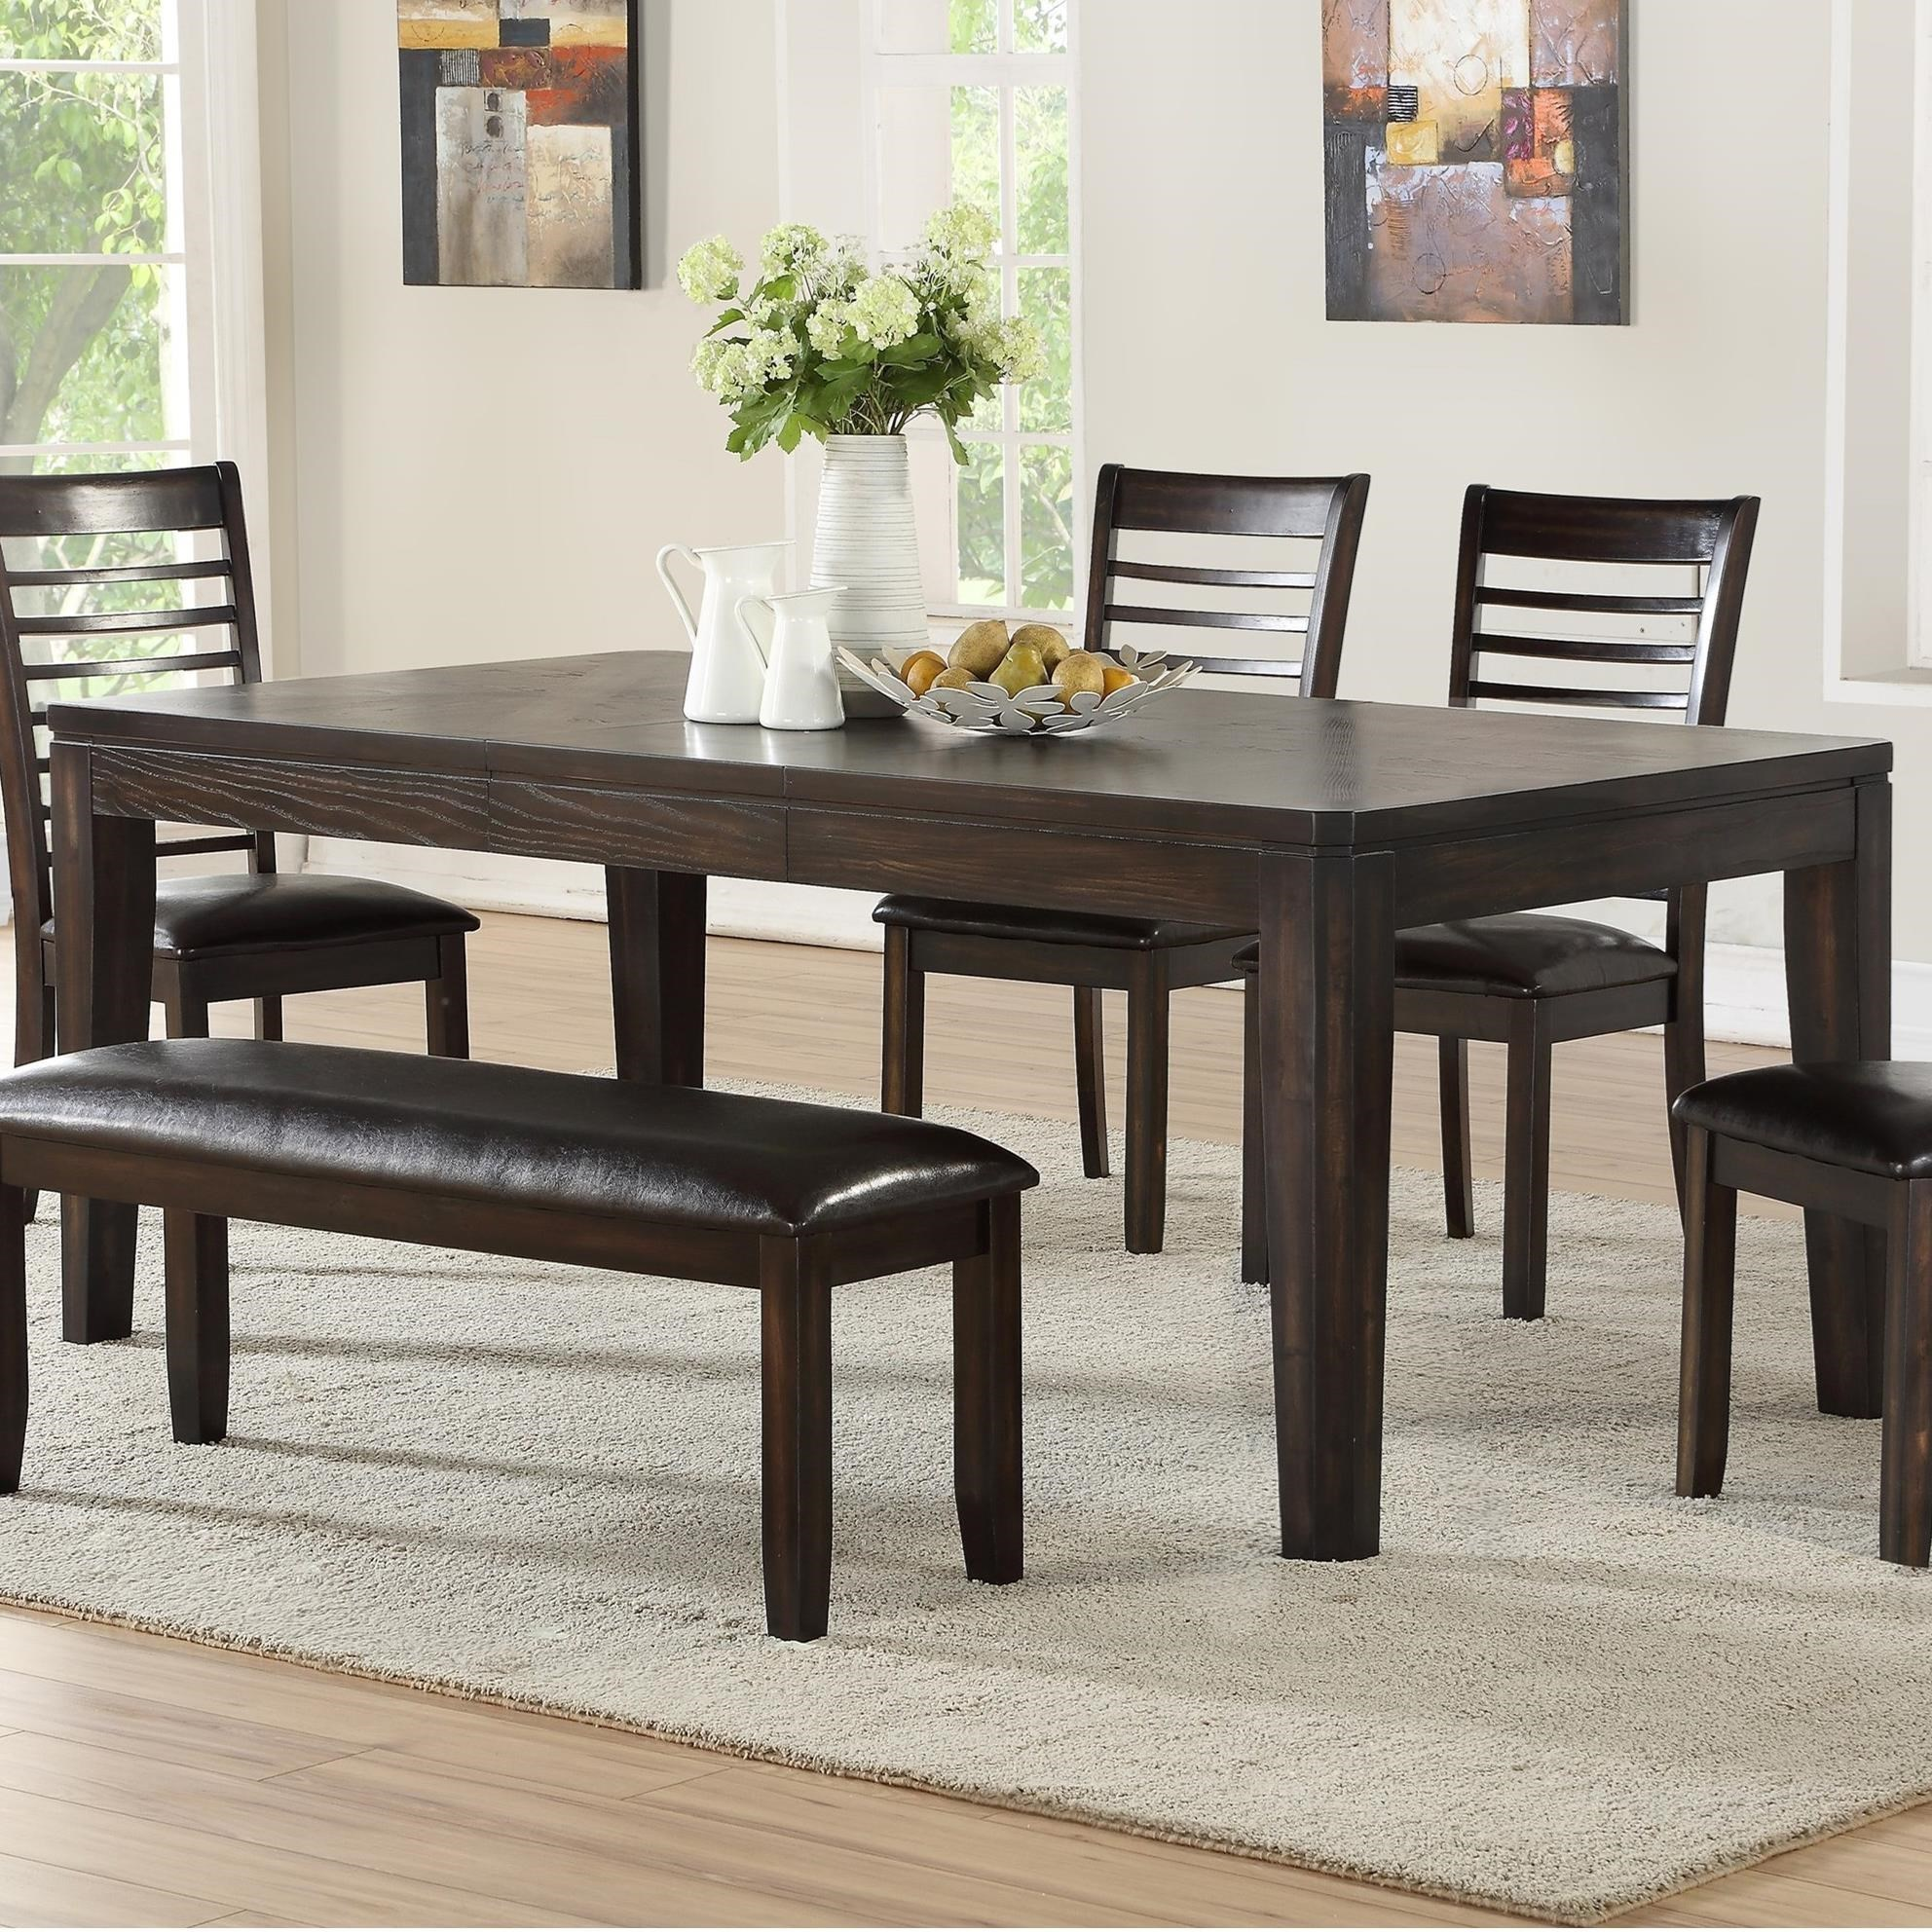 Ally Dining Table by Steve Silver at Northeast Factory Direct